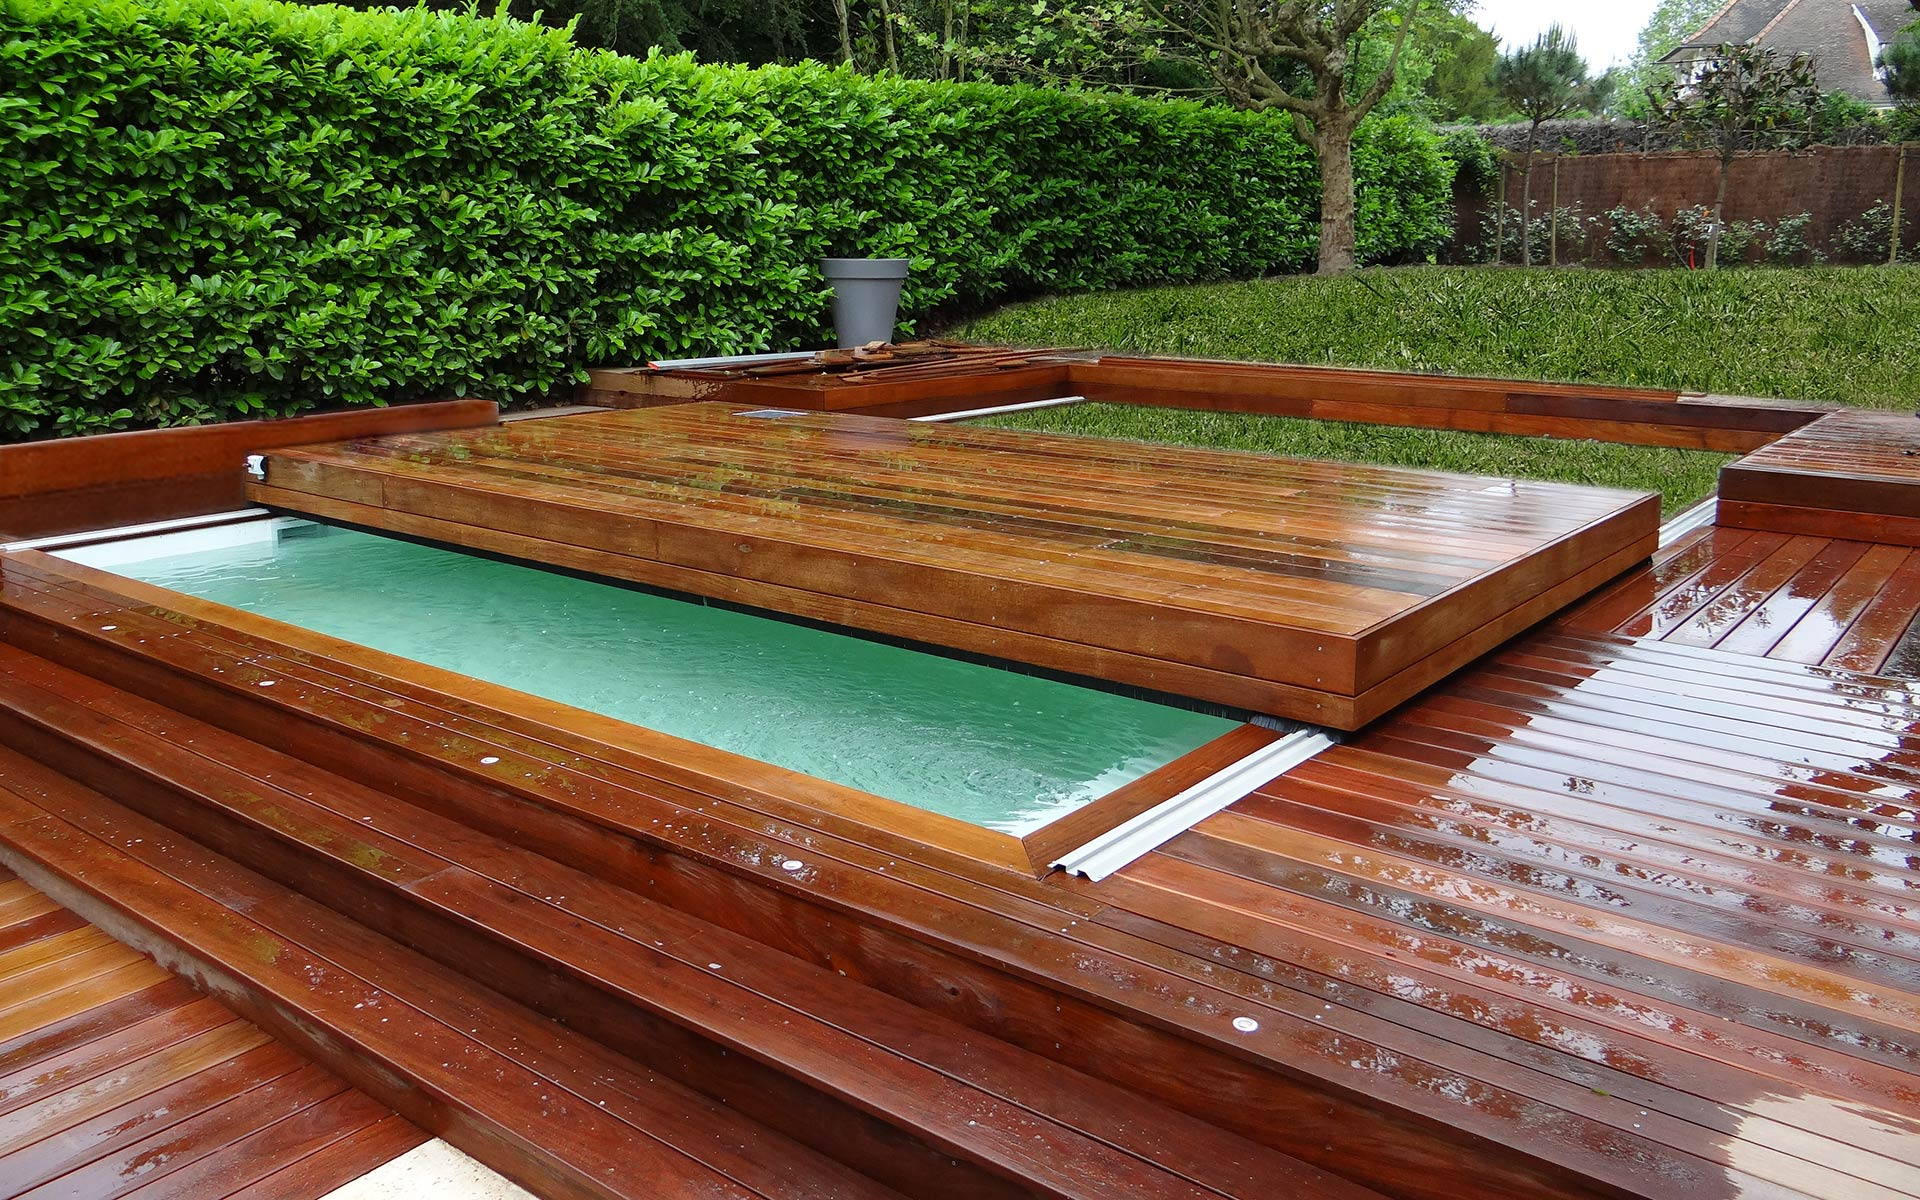 Terrasse mobile pour piscine hidden pool hidden pool for Piscine integree dans terrasse